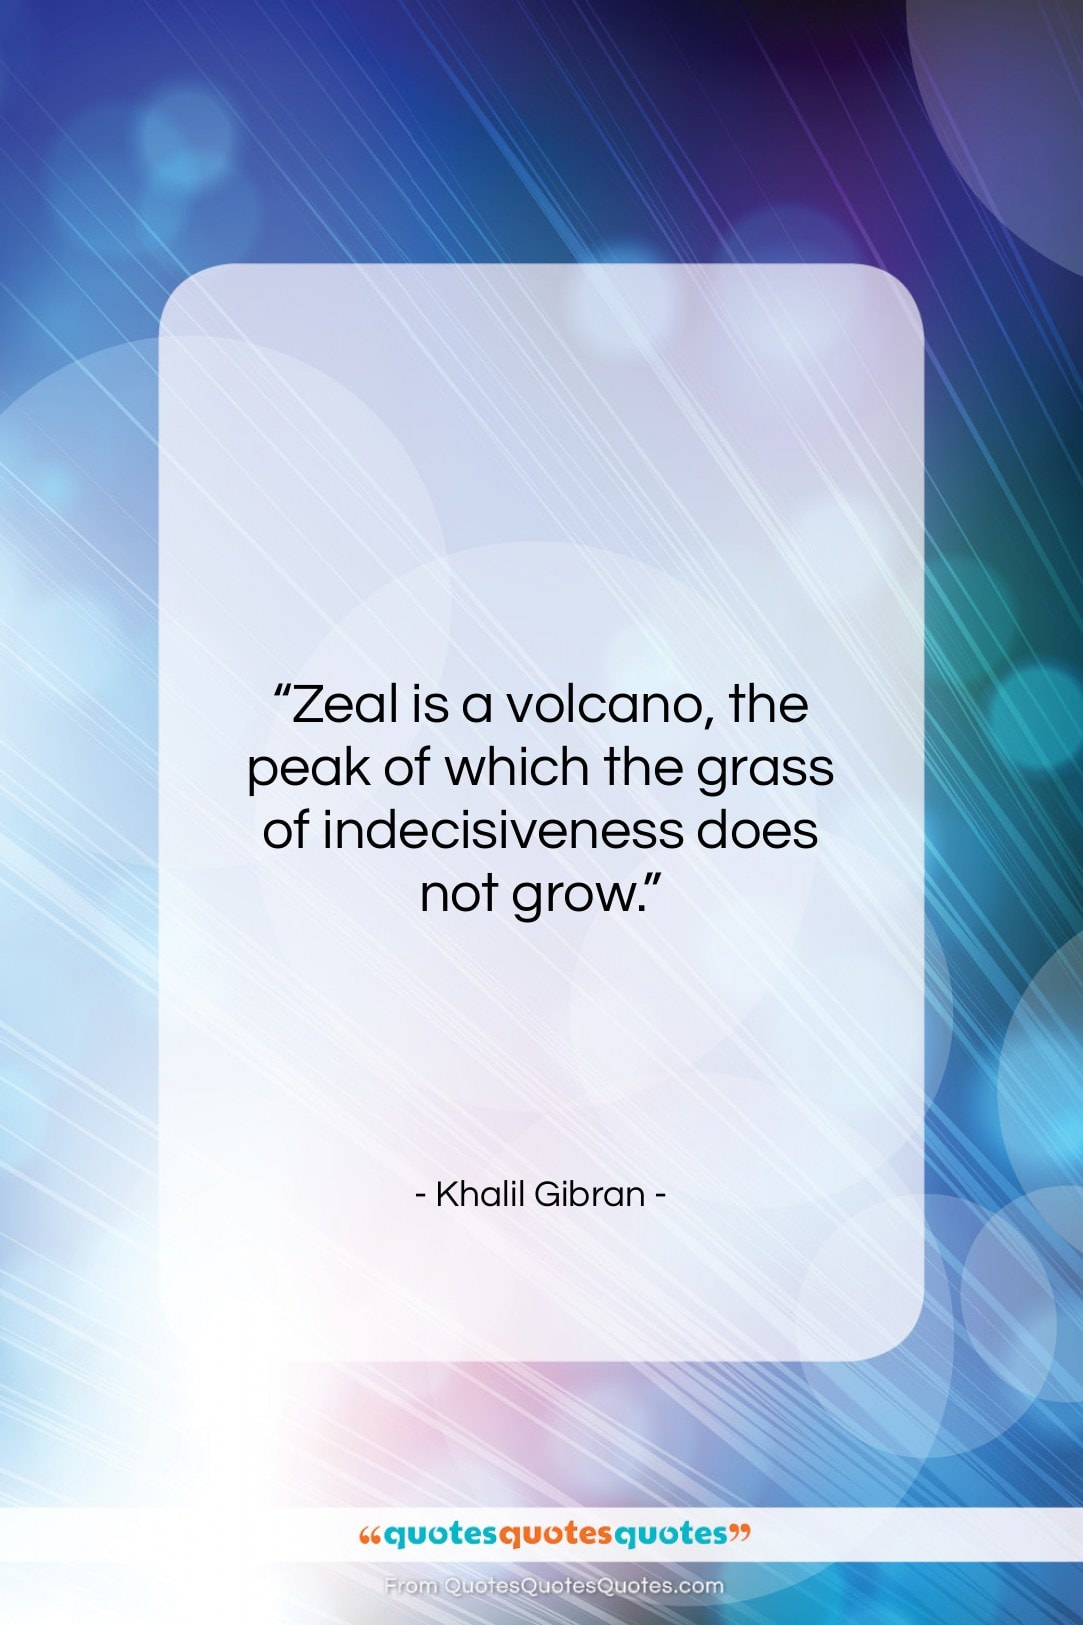 """Khalil Gibran quote: """"Zeal is a volcano, the peak of…""""- at QuotesQuotesQuotes.com"""